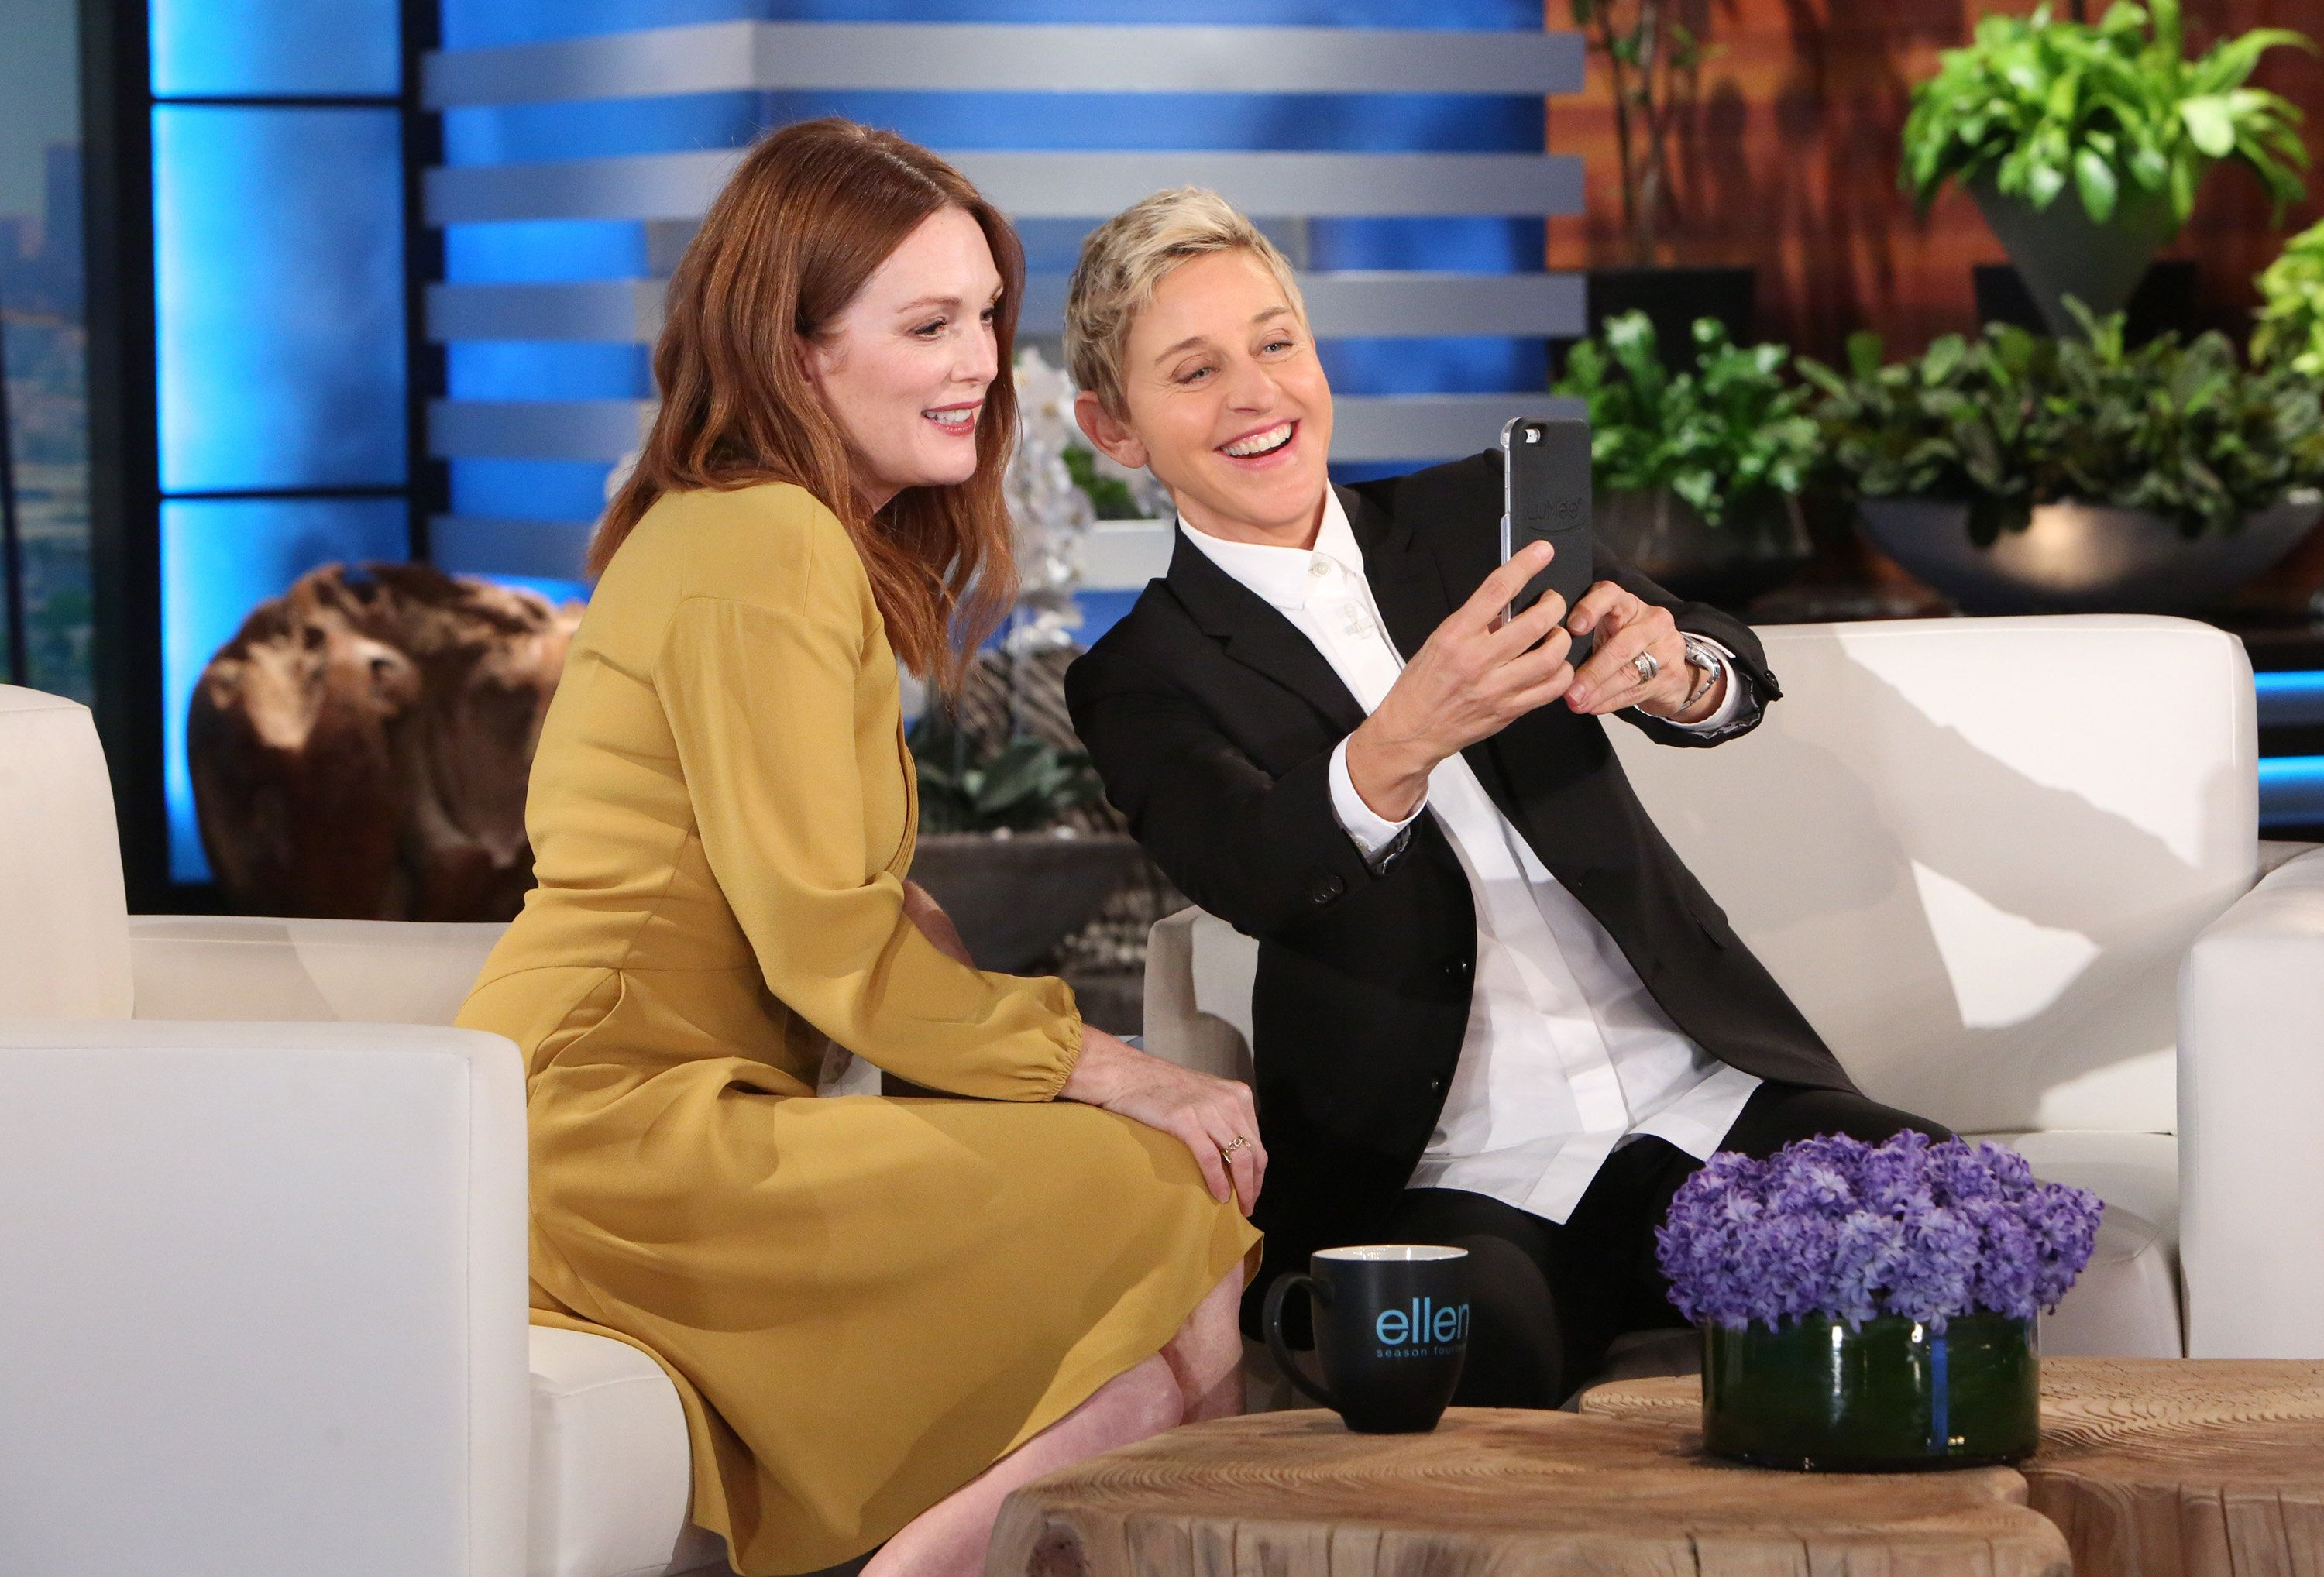 """In this photo released by Warner Bros., a taping of """"The Ellen DeGeneres Show"""" is seen at the Warner Bros. lot in Burbank, Calif. (Photo by Michael Rozman/Warner Bros.)"""